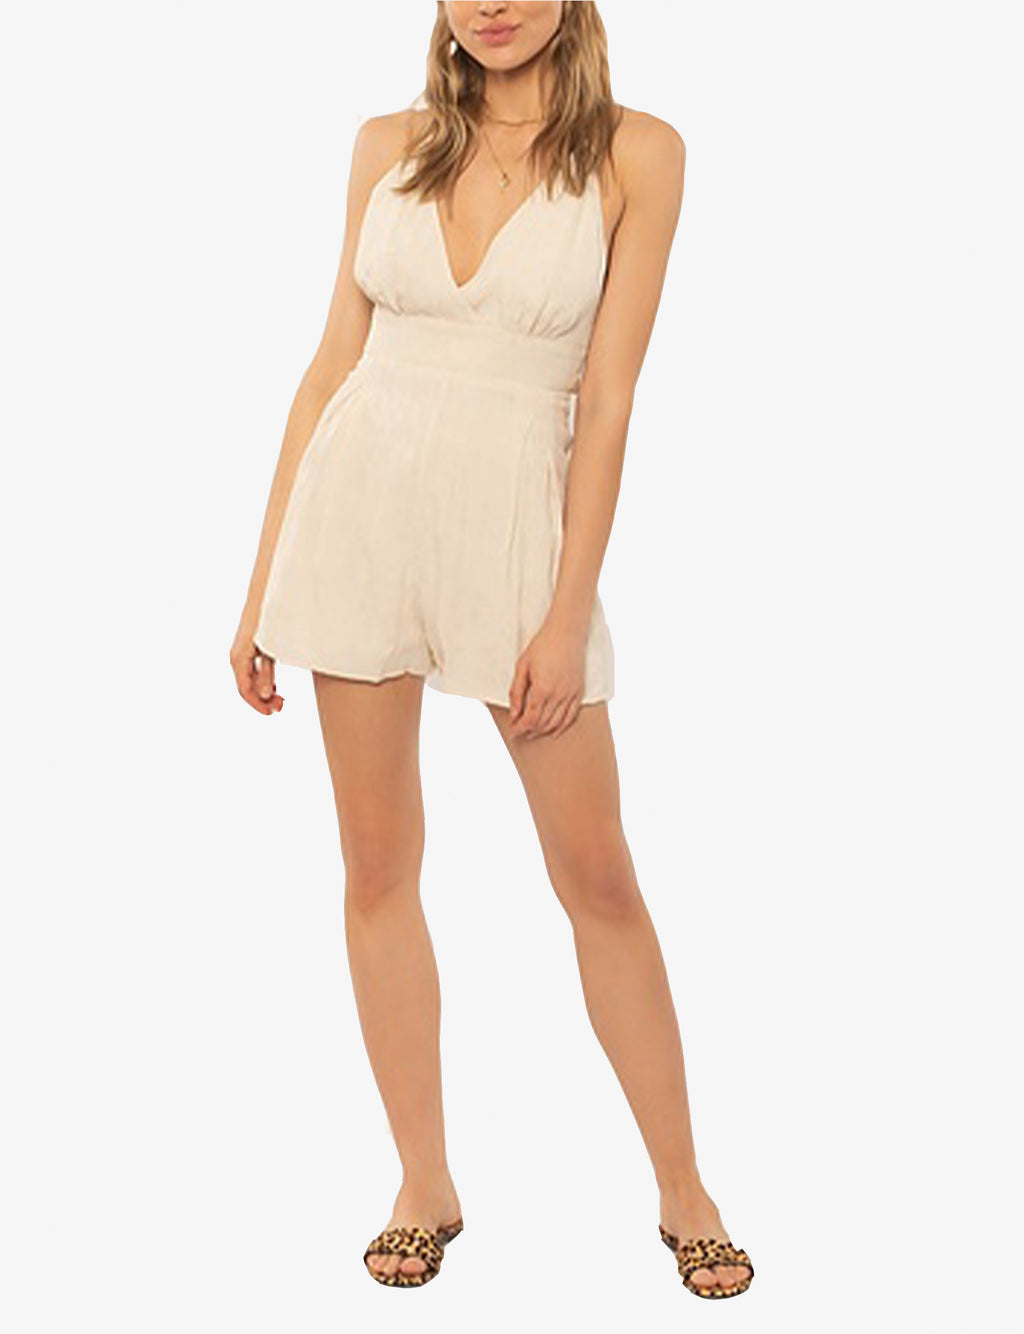 Leila Woven Tank Romper in Off White